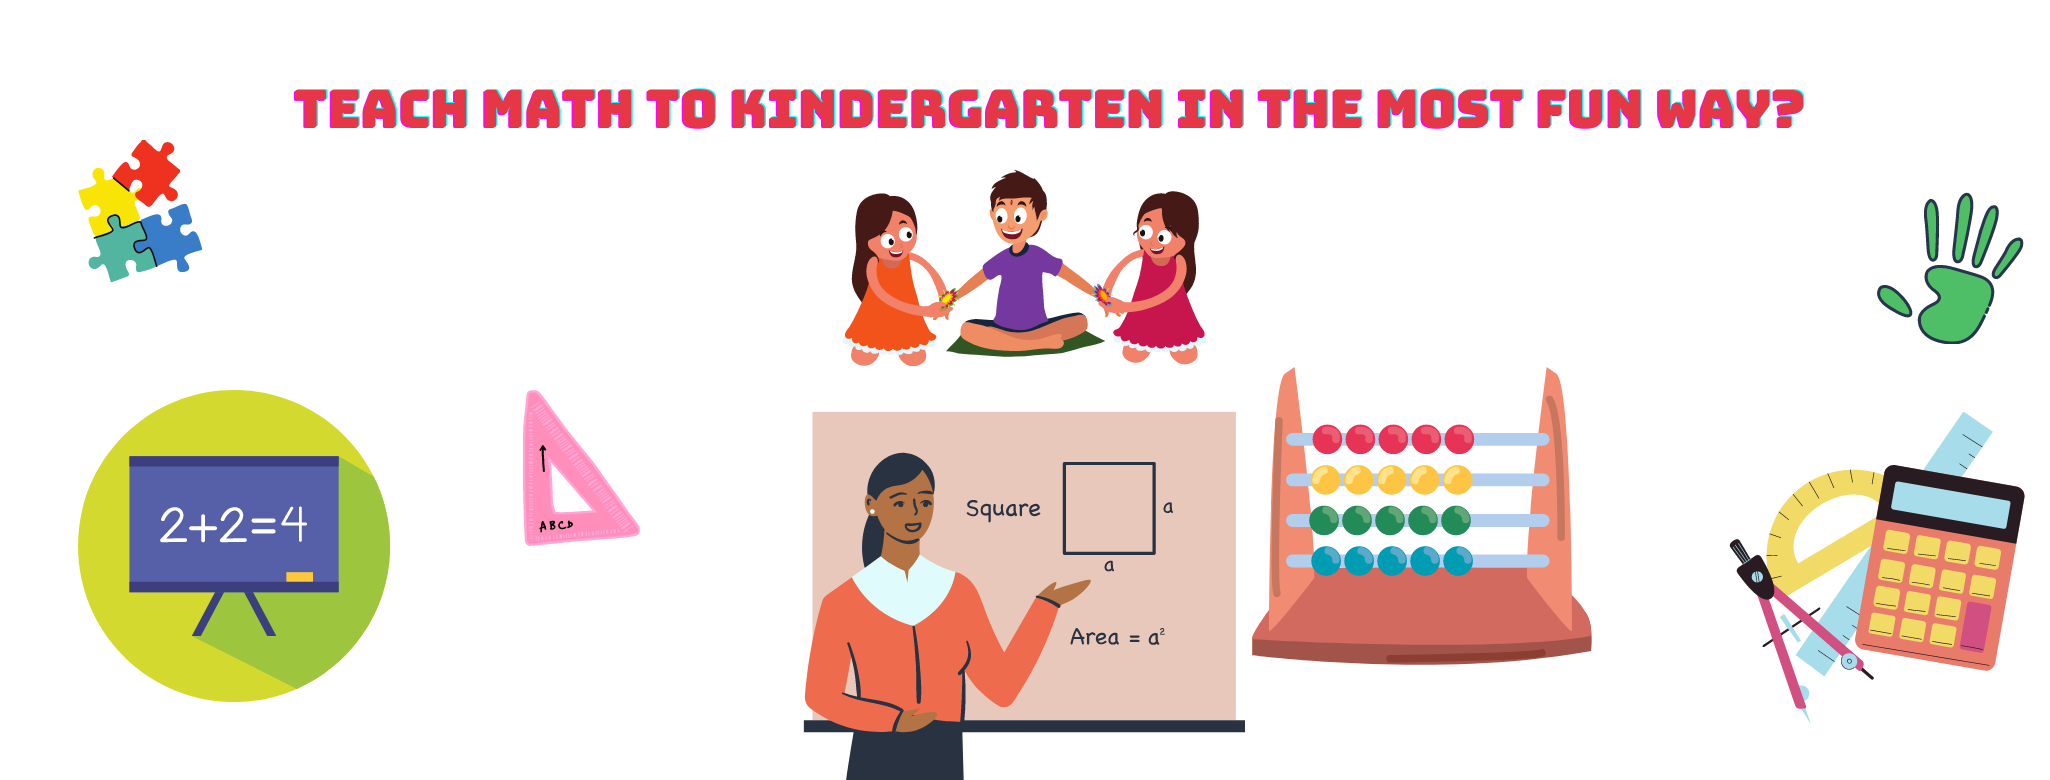 Kindergarten Math Vocabulary: Simple Definition & Image